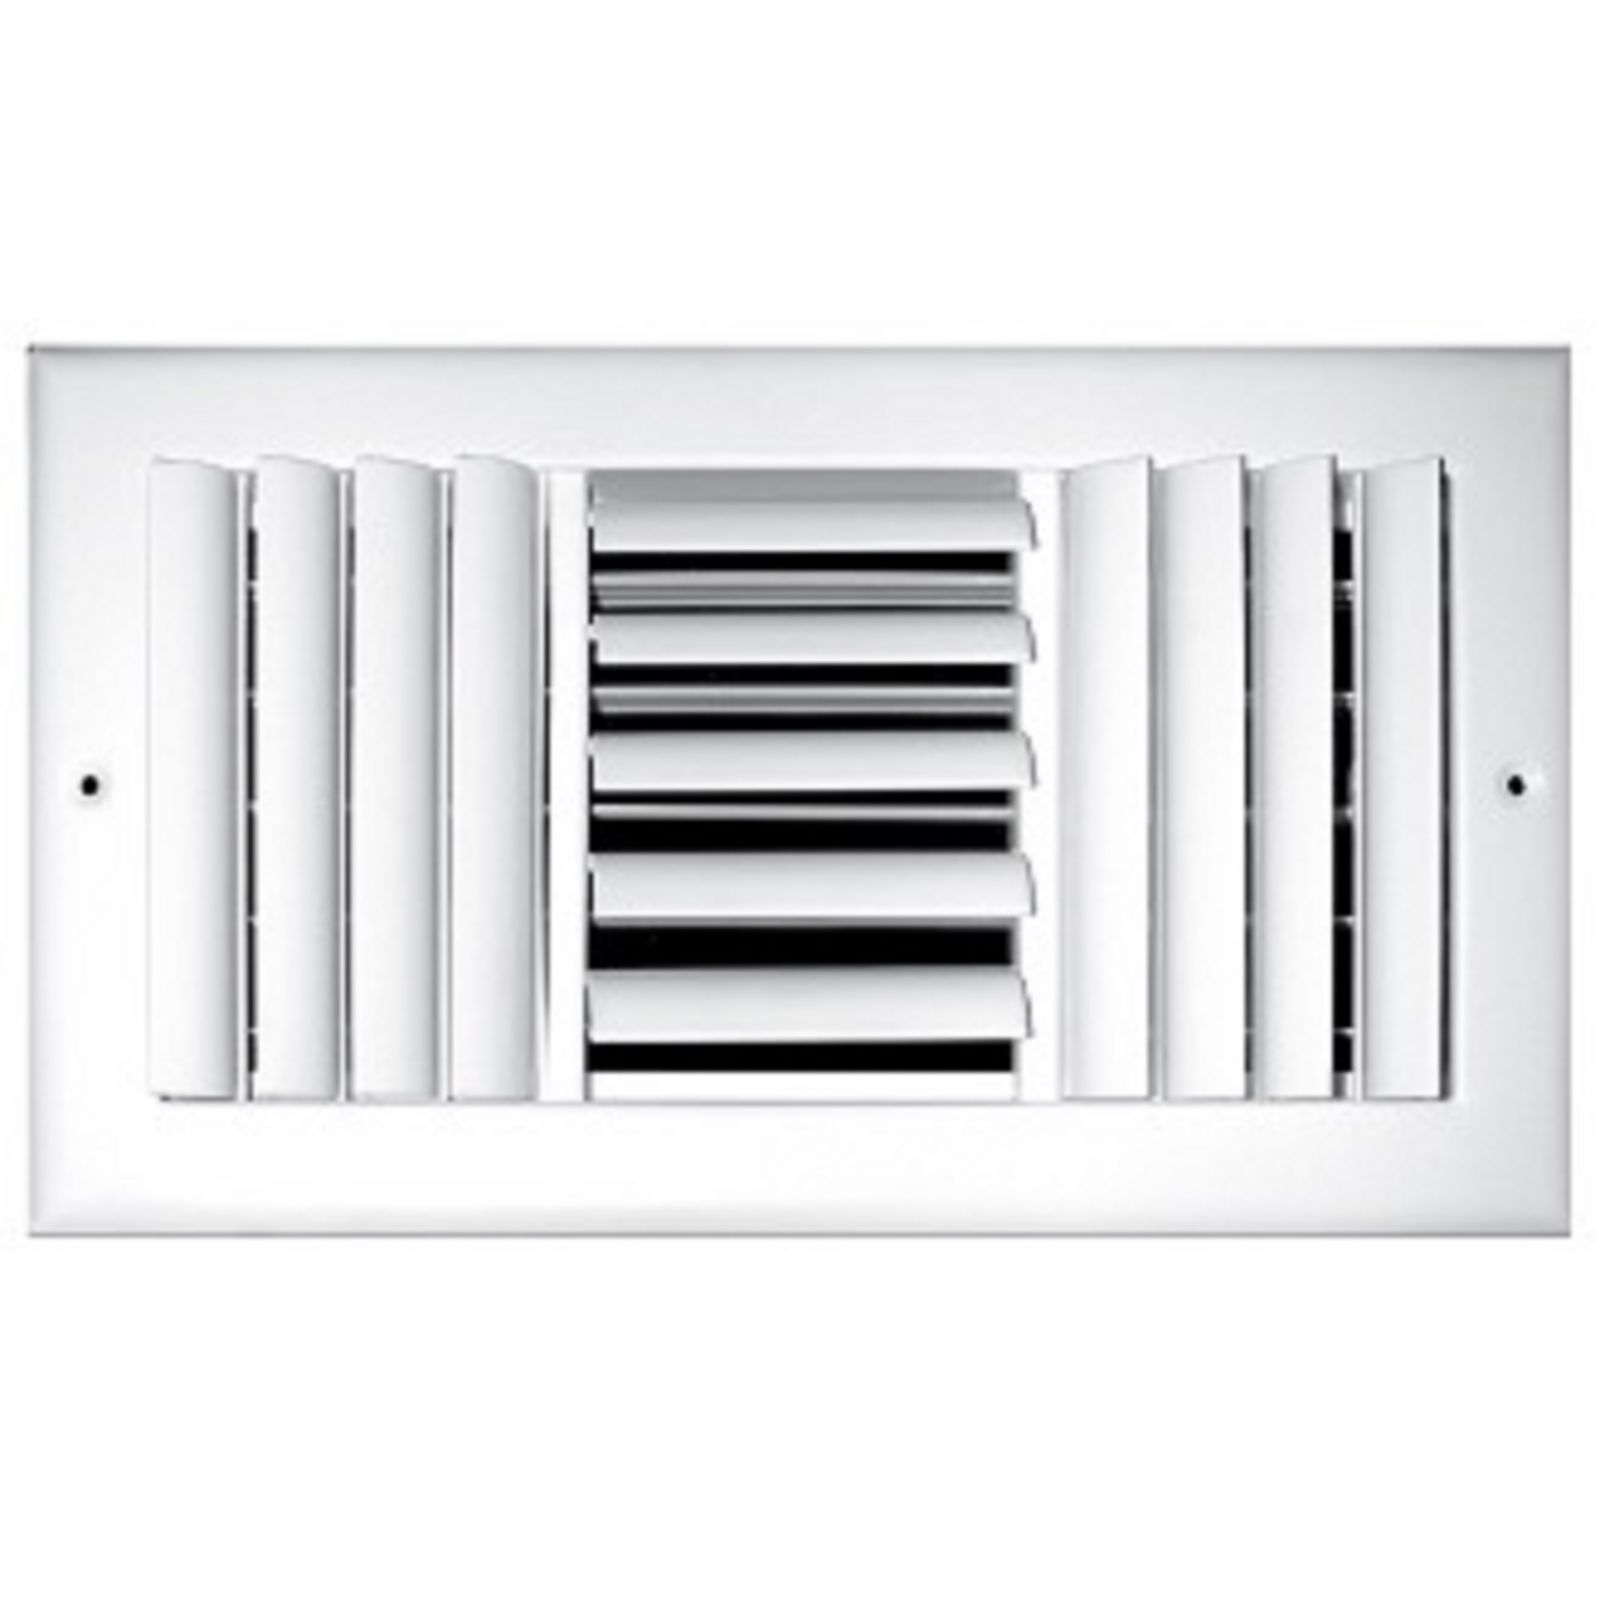 "TRUaire 303M 10X06 - Steel Adjustable Curved Blade Wall/Ceiling Register With Multi Shutter Damper, 3-Way, White, 10"" X 06"""